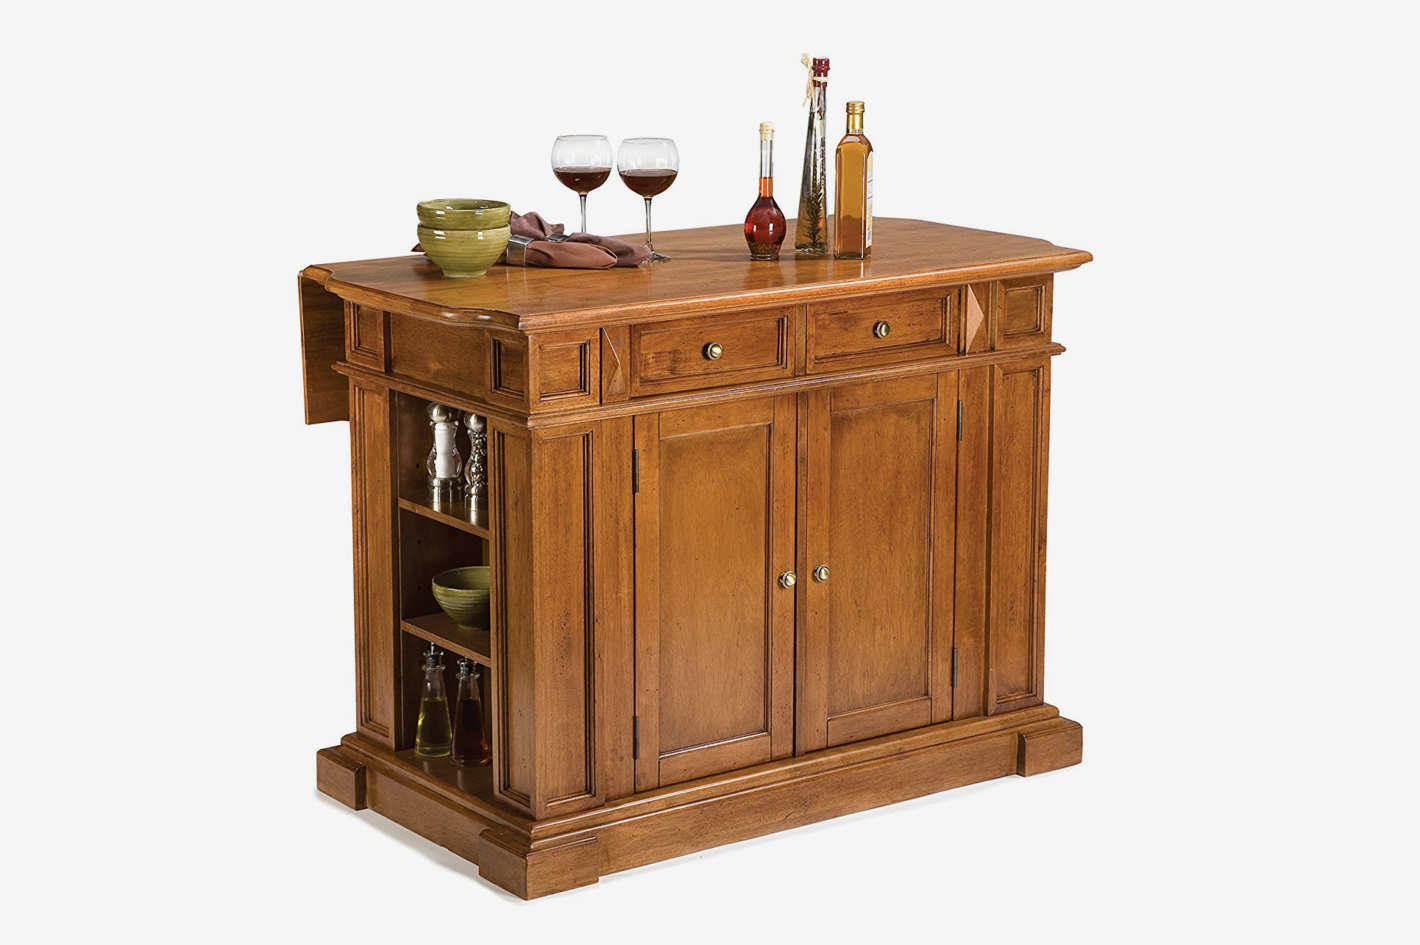 Home Styles 5004 94 Kitchen Island, Distressed Oak Finish